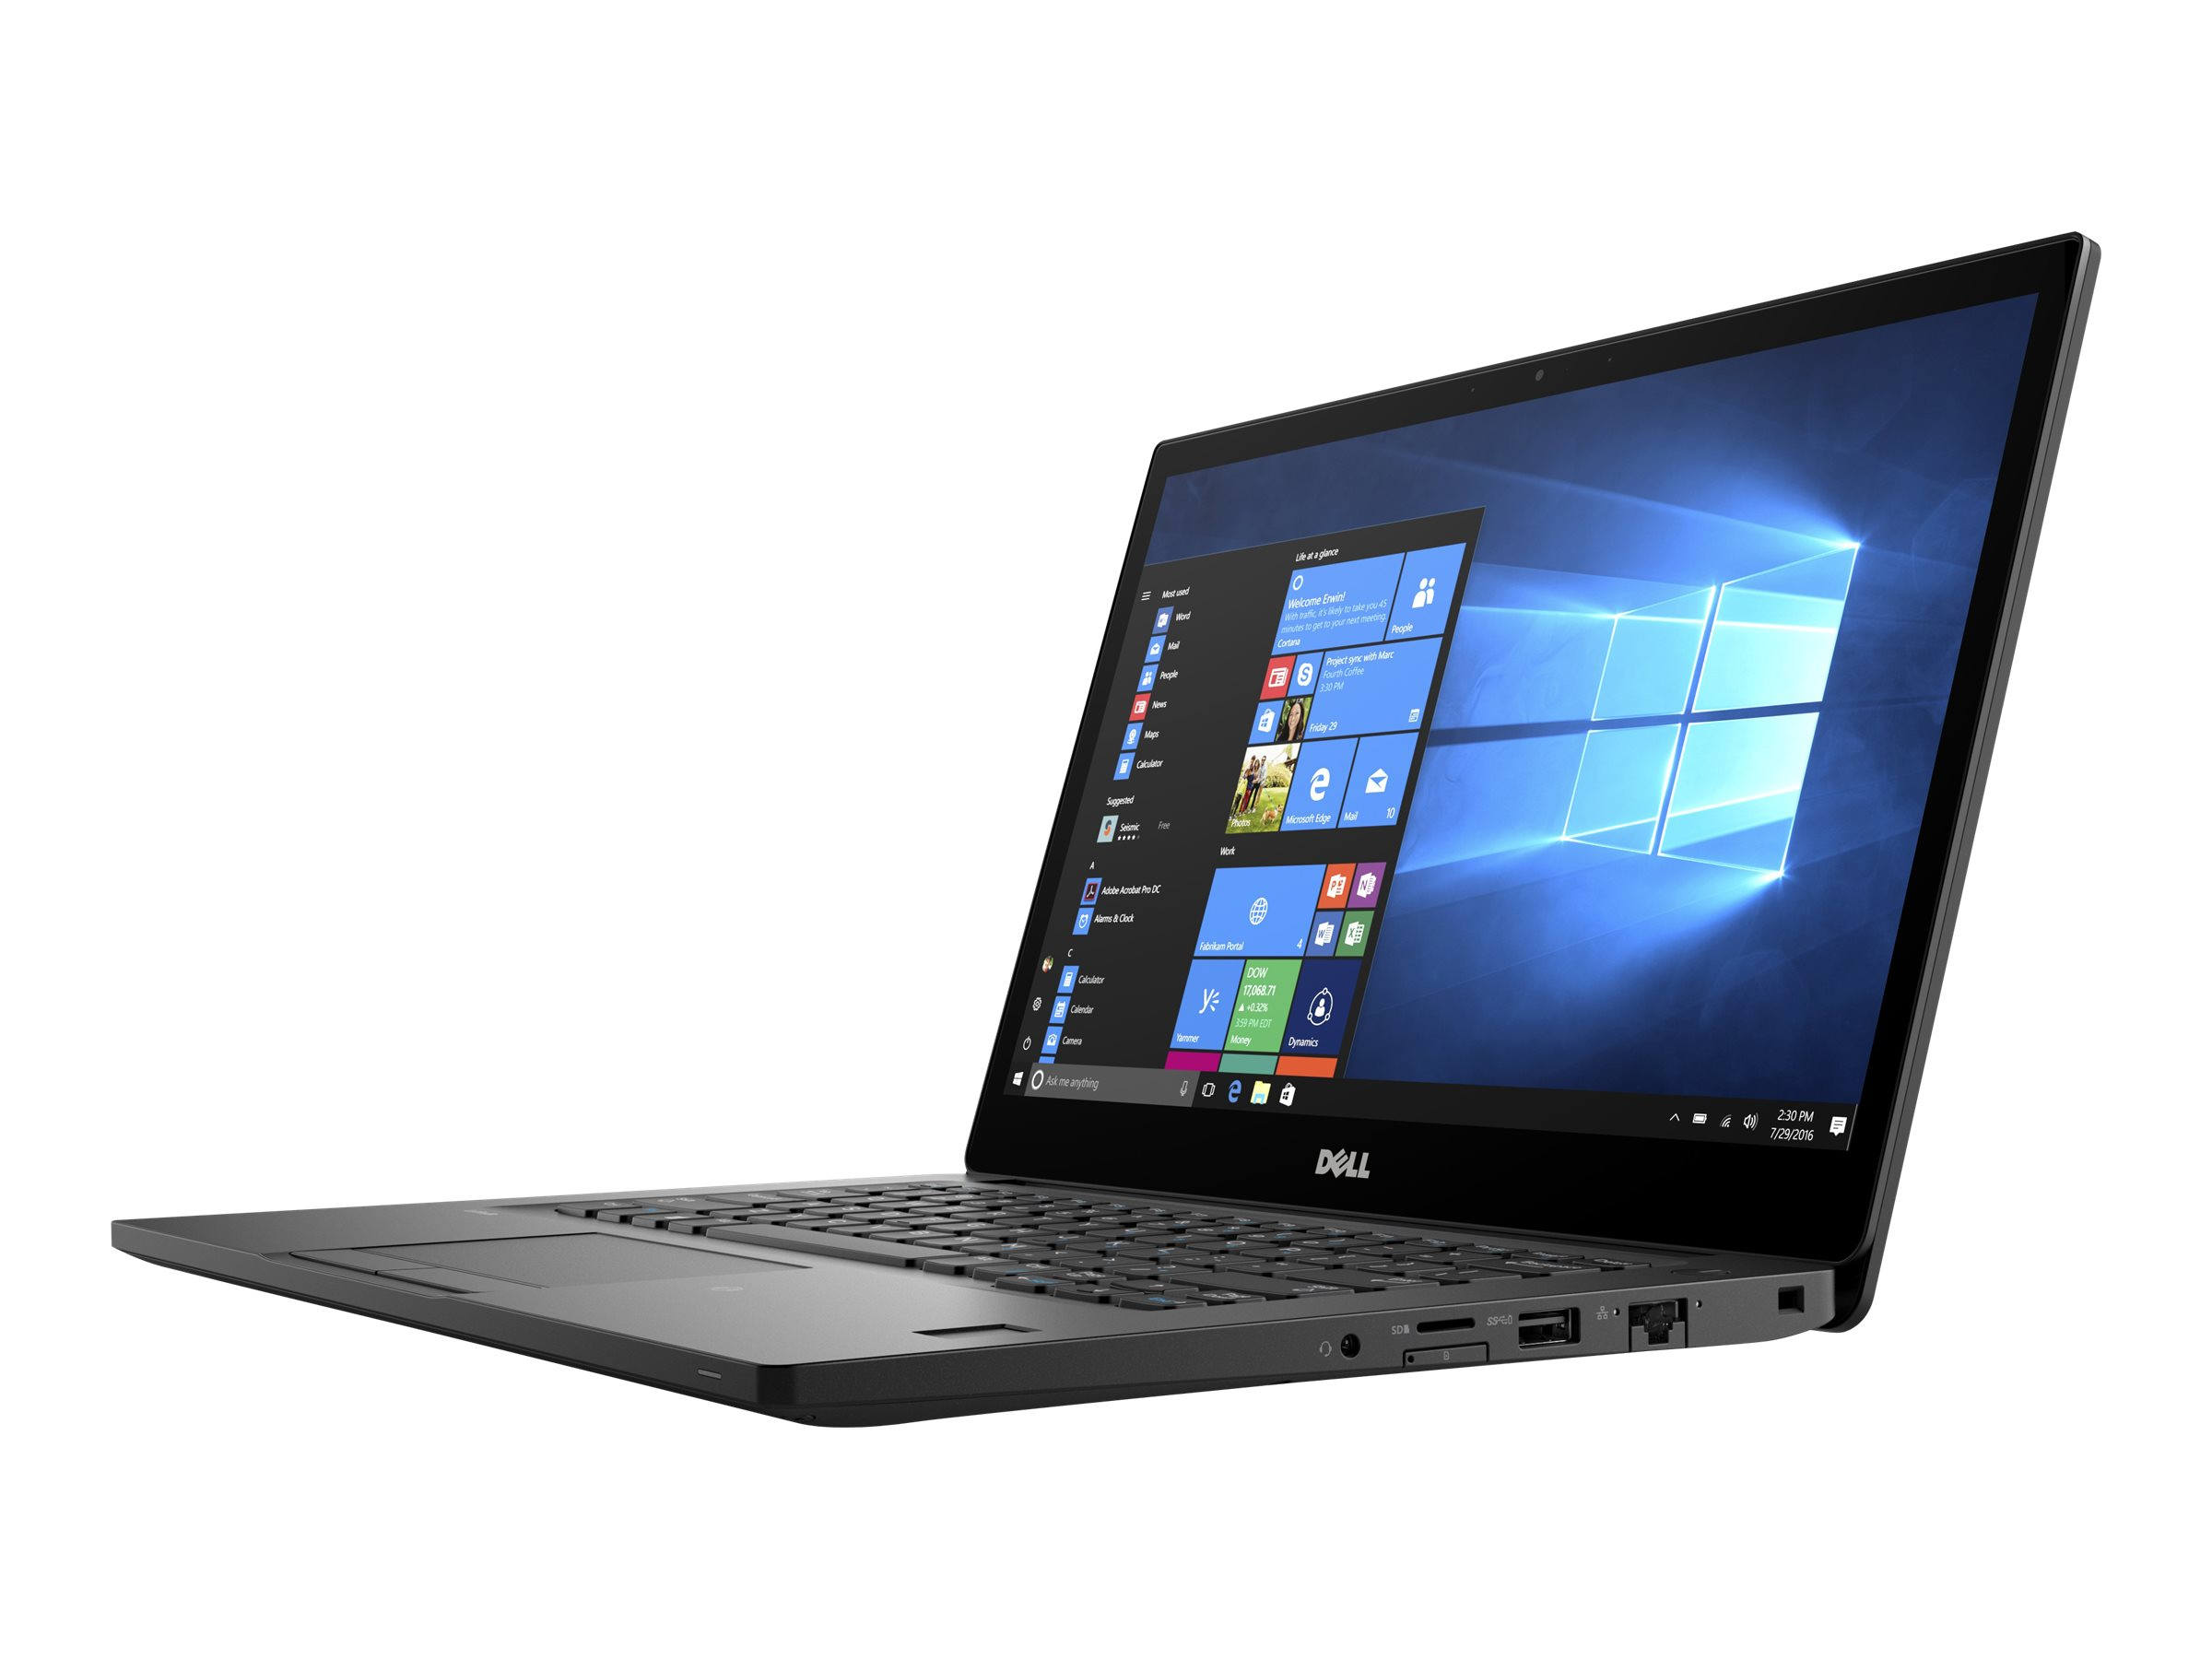 Dell Latitude 7280 - Ultrabook - Core i7 7600U / 2.8 GHz - Win 10 Pro 64-Bit - 8 GB RAM - 256 GB SSD